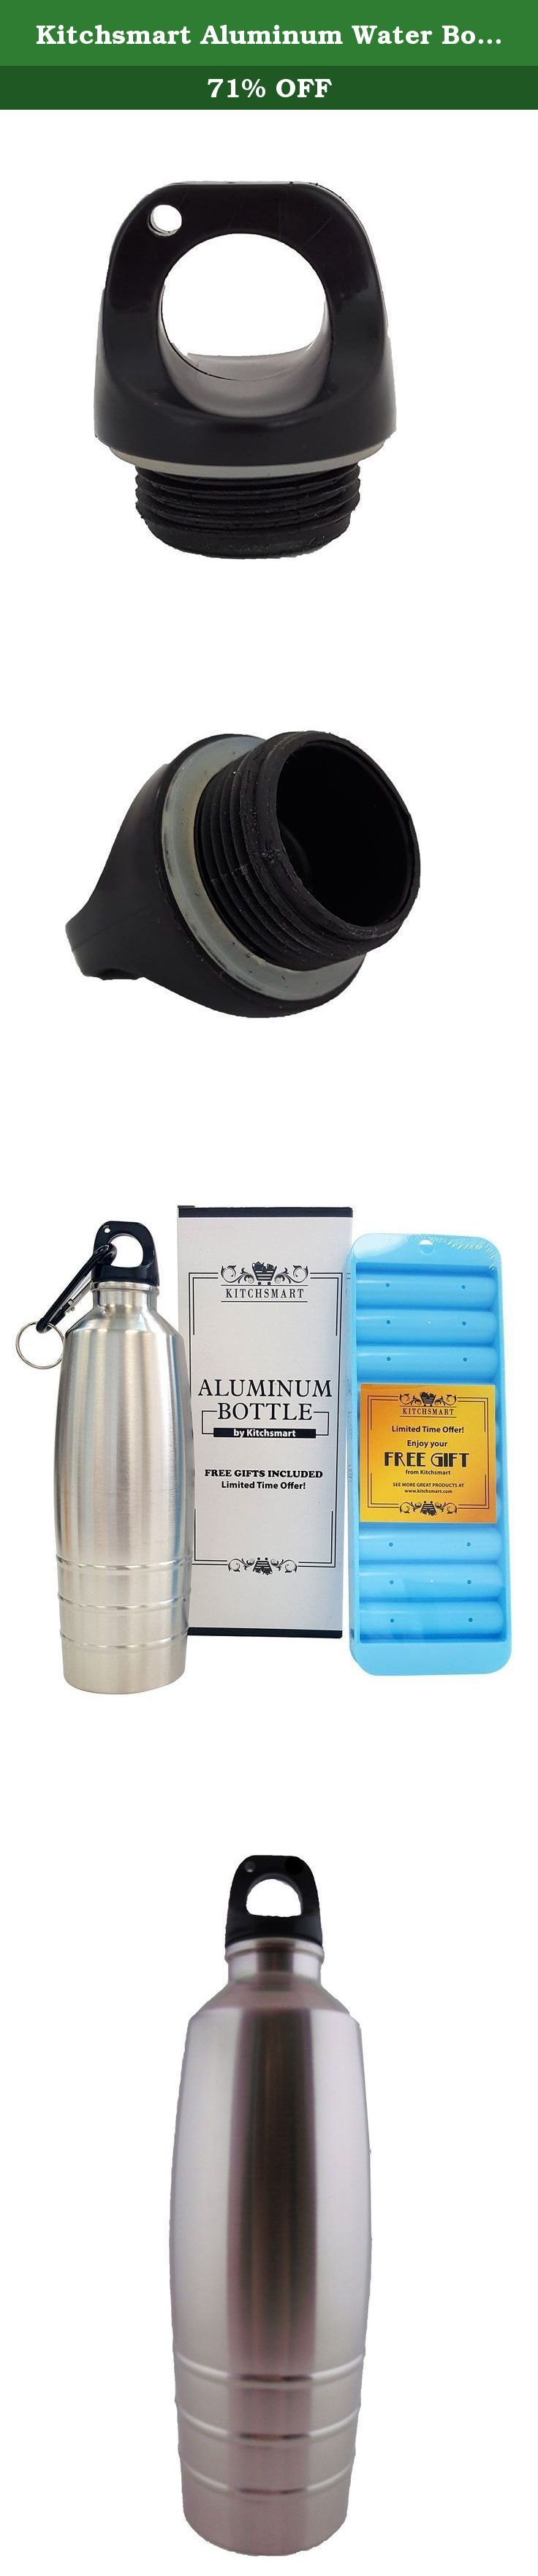 Kitchsmart Aluminum Water Bottle with Plastic Screw Lid Looped on the Top, Silver Lines, 25oz. LIMITED TIME OFFER! Get your Aluminum Bottle in a Beautiful Box with Ice Cube Sticks Tray, Clips and Special Coupon INCLUDED! A perfect gift for a special person! The Kitchsmart Aluminum Water Bottle has a convenient design that makes it easy to use and carry everywhere. It is featured with a tight sealer that will prevent any leaks, and its lightweight and the loop on the top will allow you to...